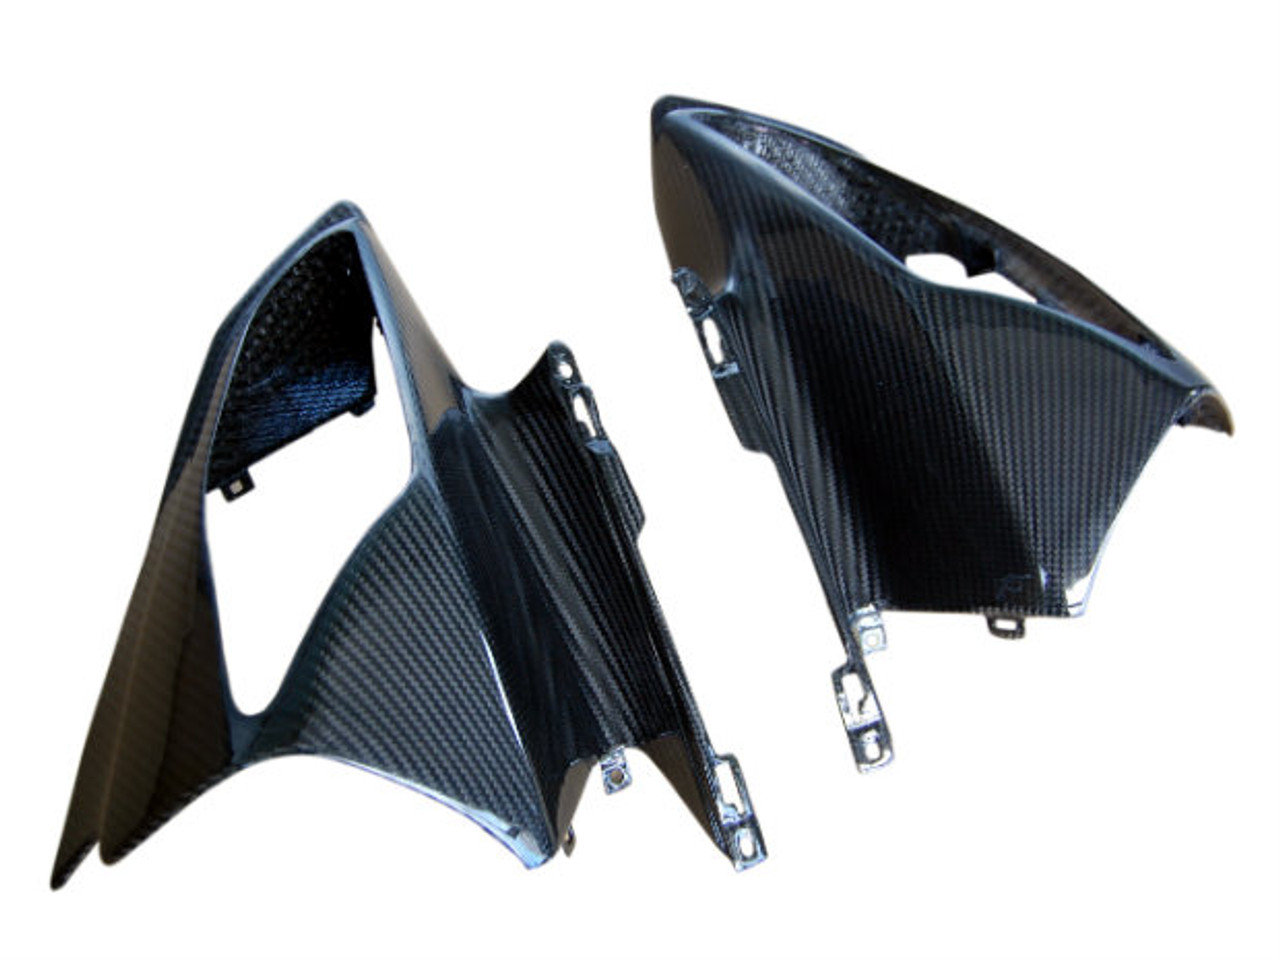 Front Fairing in Glossy Twill Weave Carbon Fiber for Yamaha R6 08-16